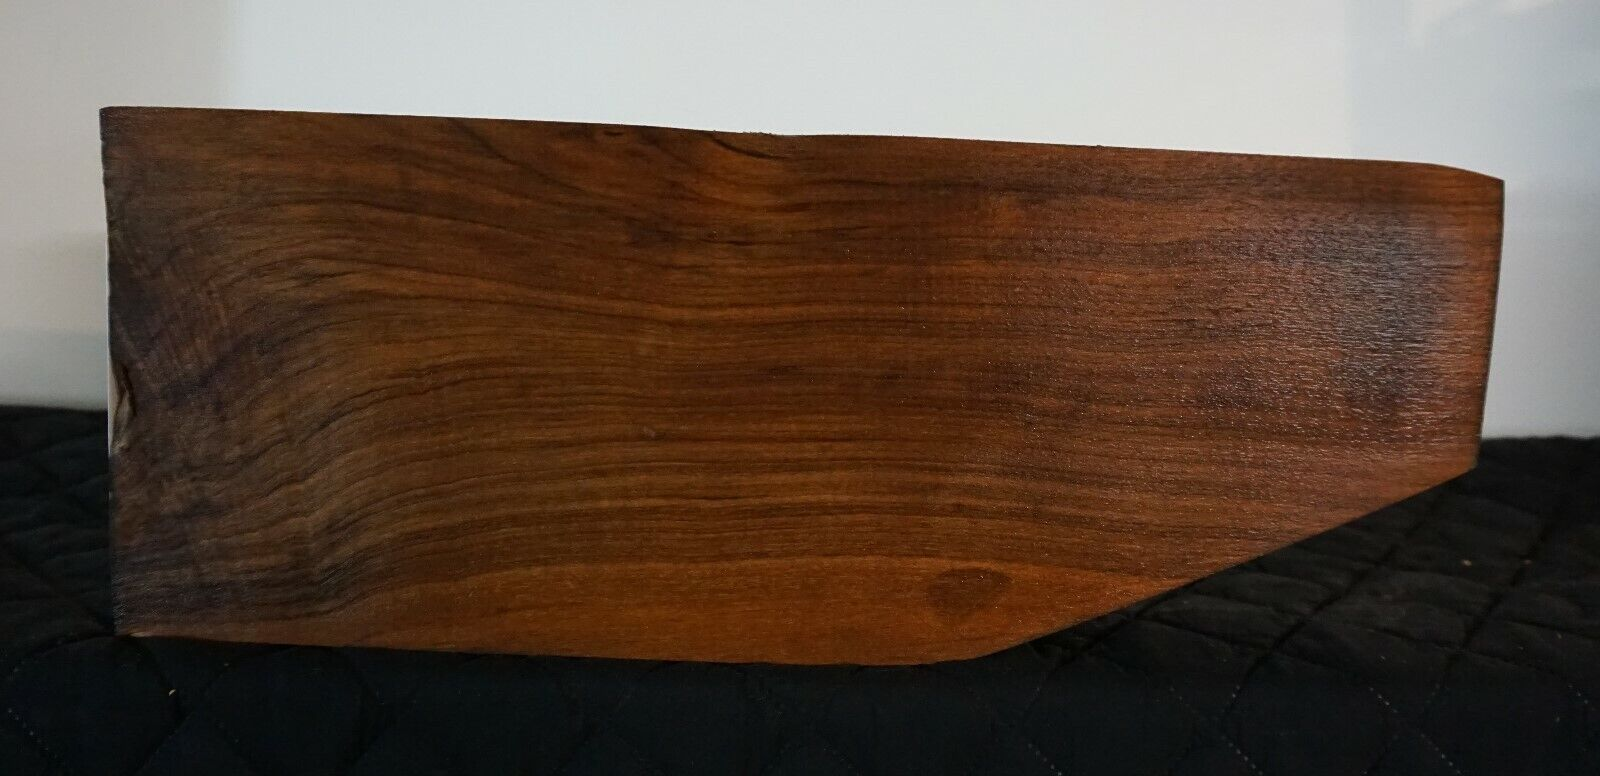 EXHIBITION GRADE ENGLISH PUMP AUTO WALNUT BLANK AND FORE ARM